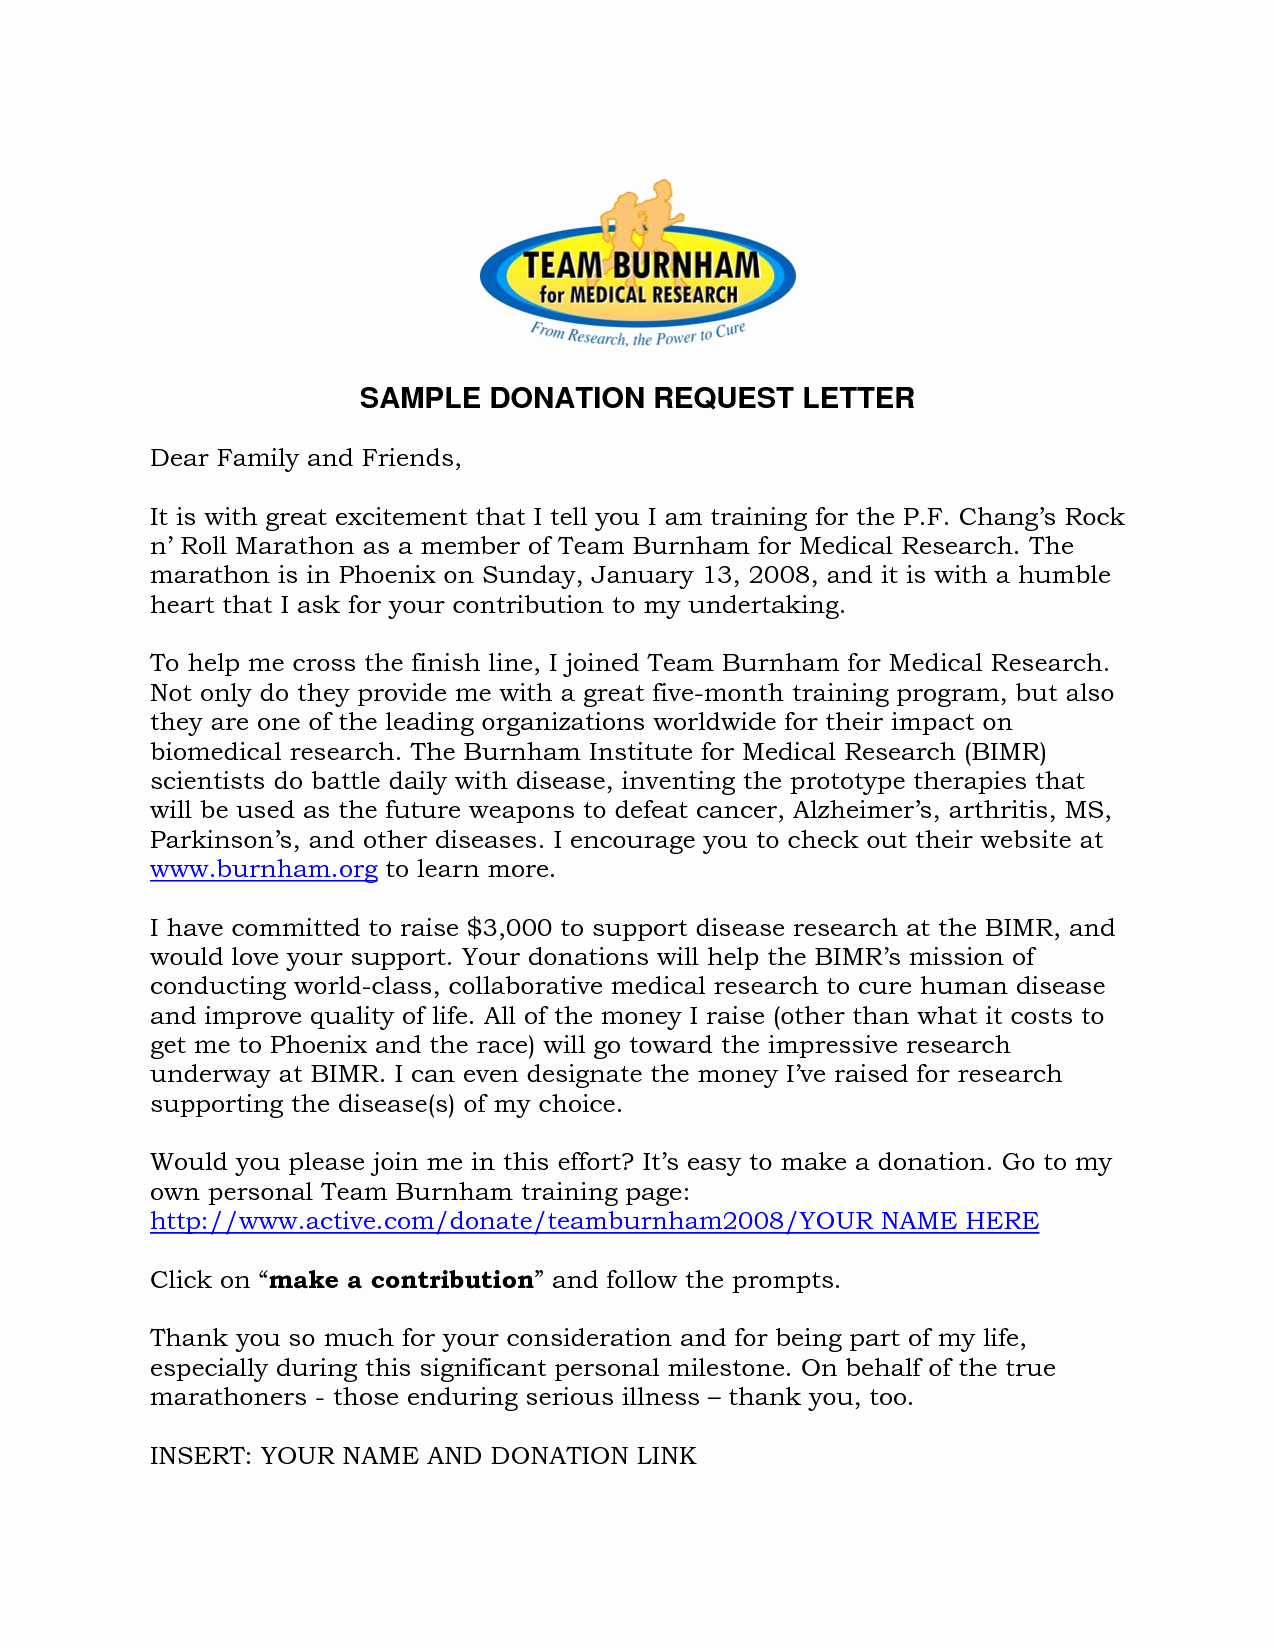 Sample Donation Request Letter Best Of Sample Donation Request Letter Template